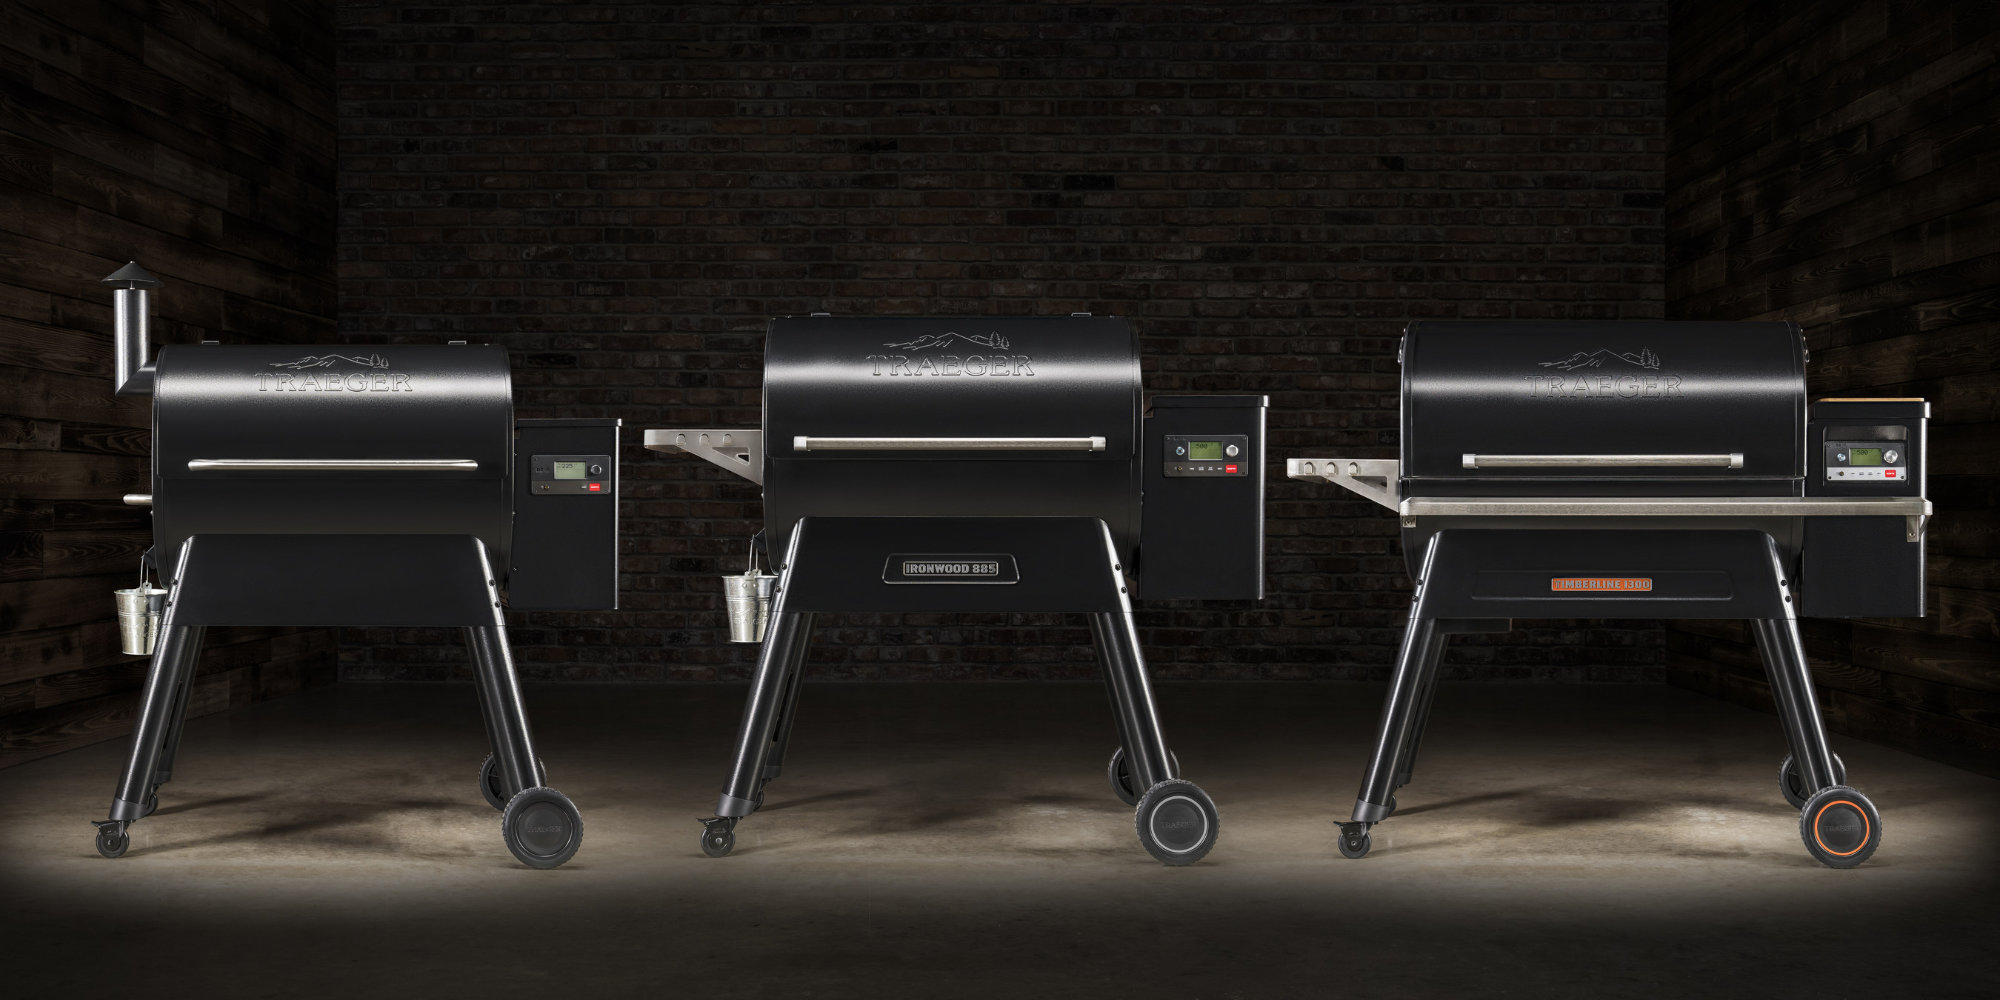 Traeger's new smart grills let you monitor food, tweak temps, and set timers from iOS or Android